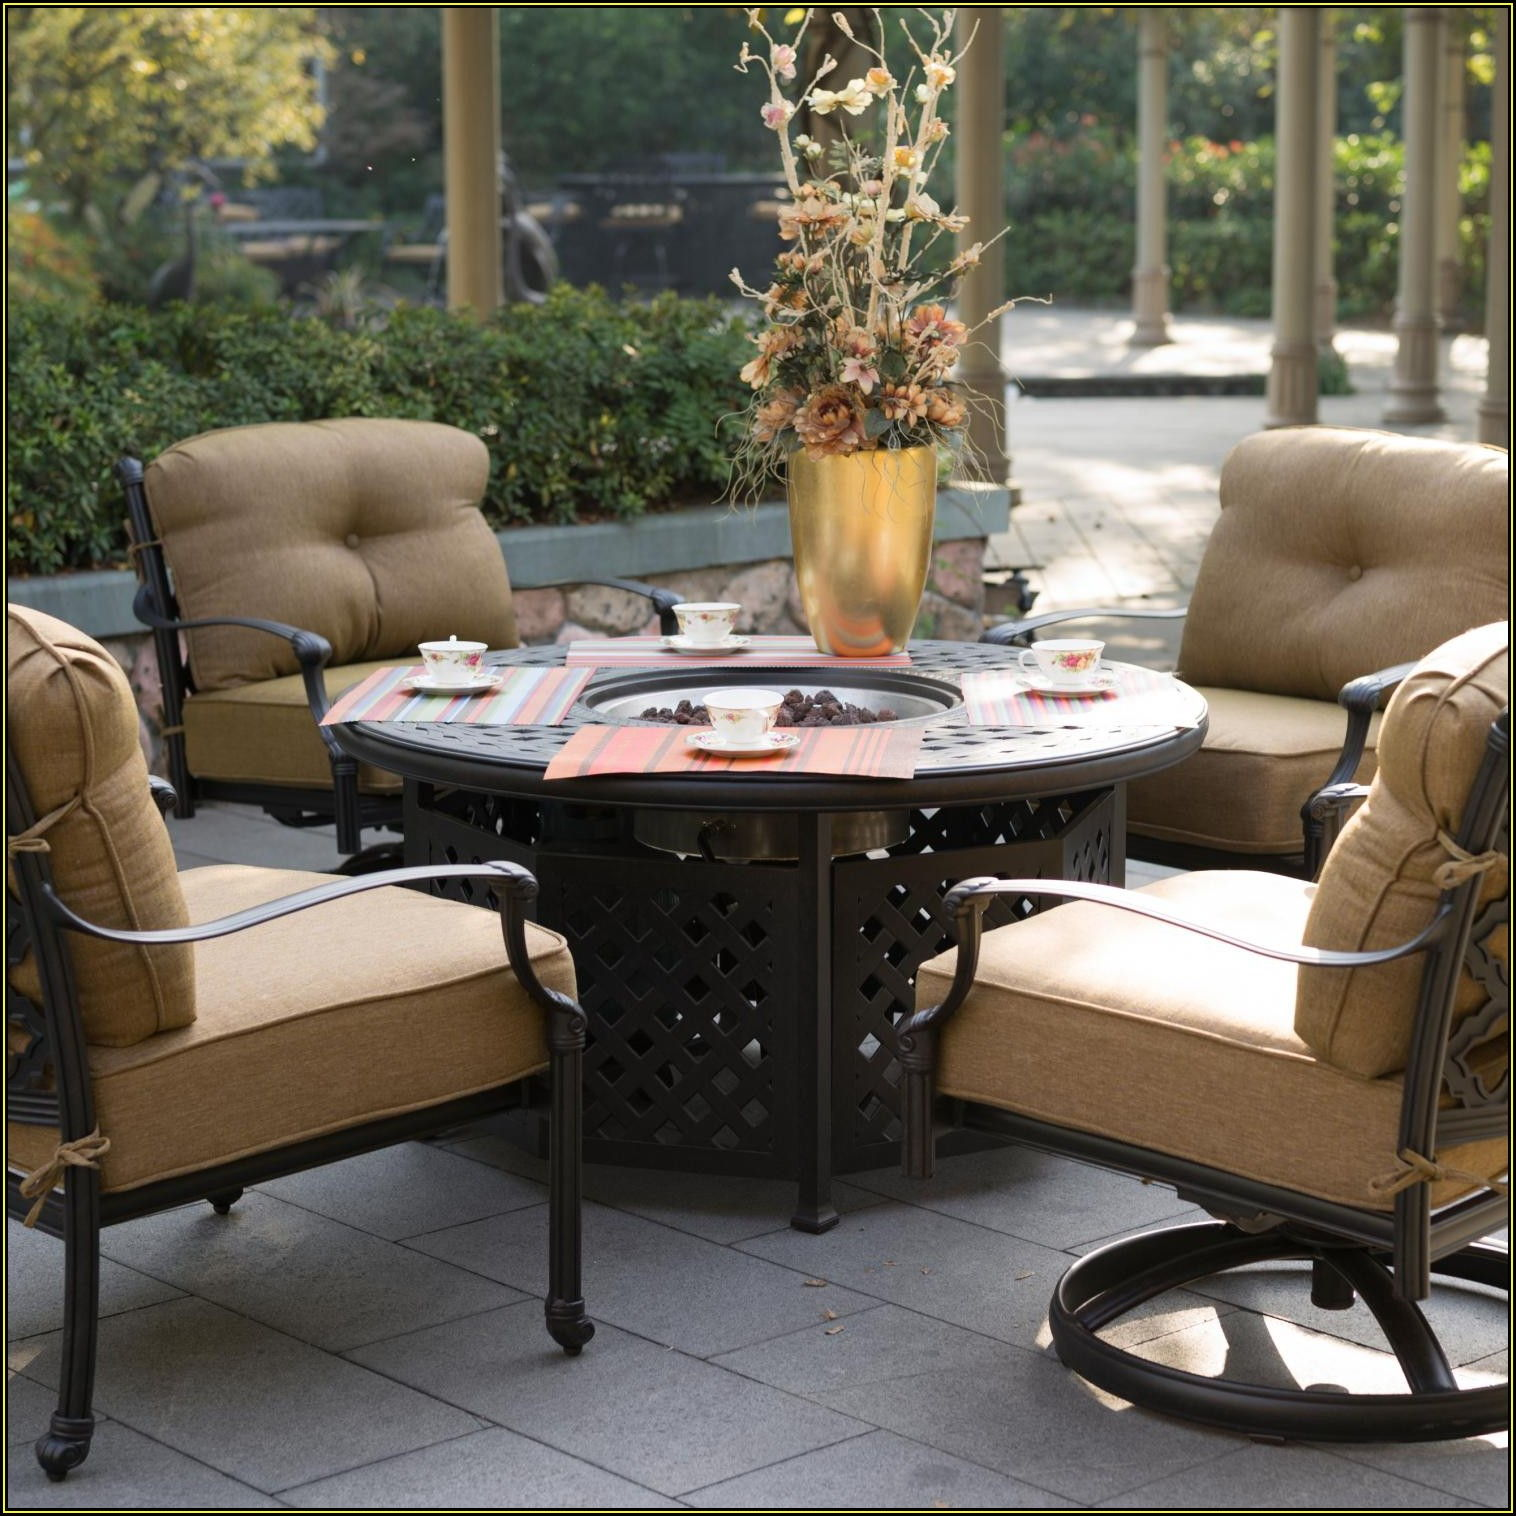 Teak Patio Furniture Sets Costco